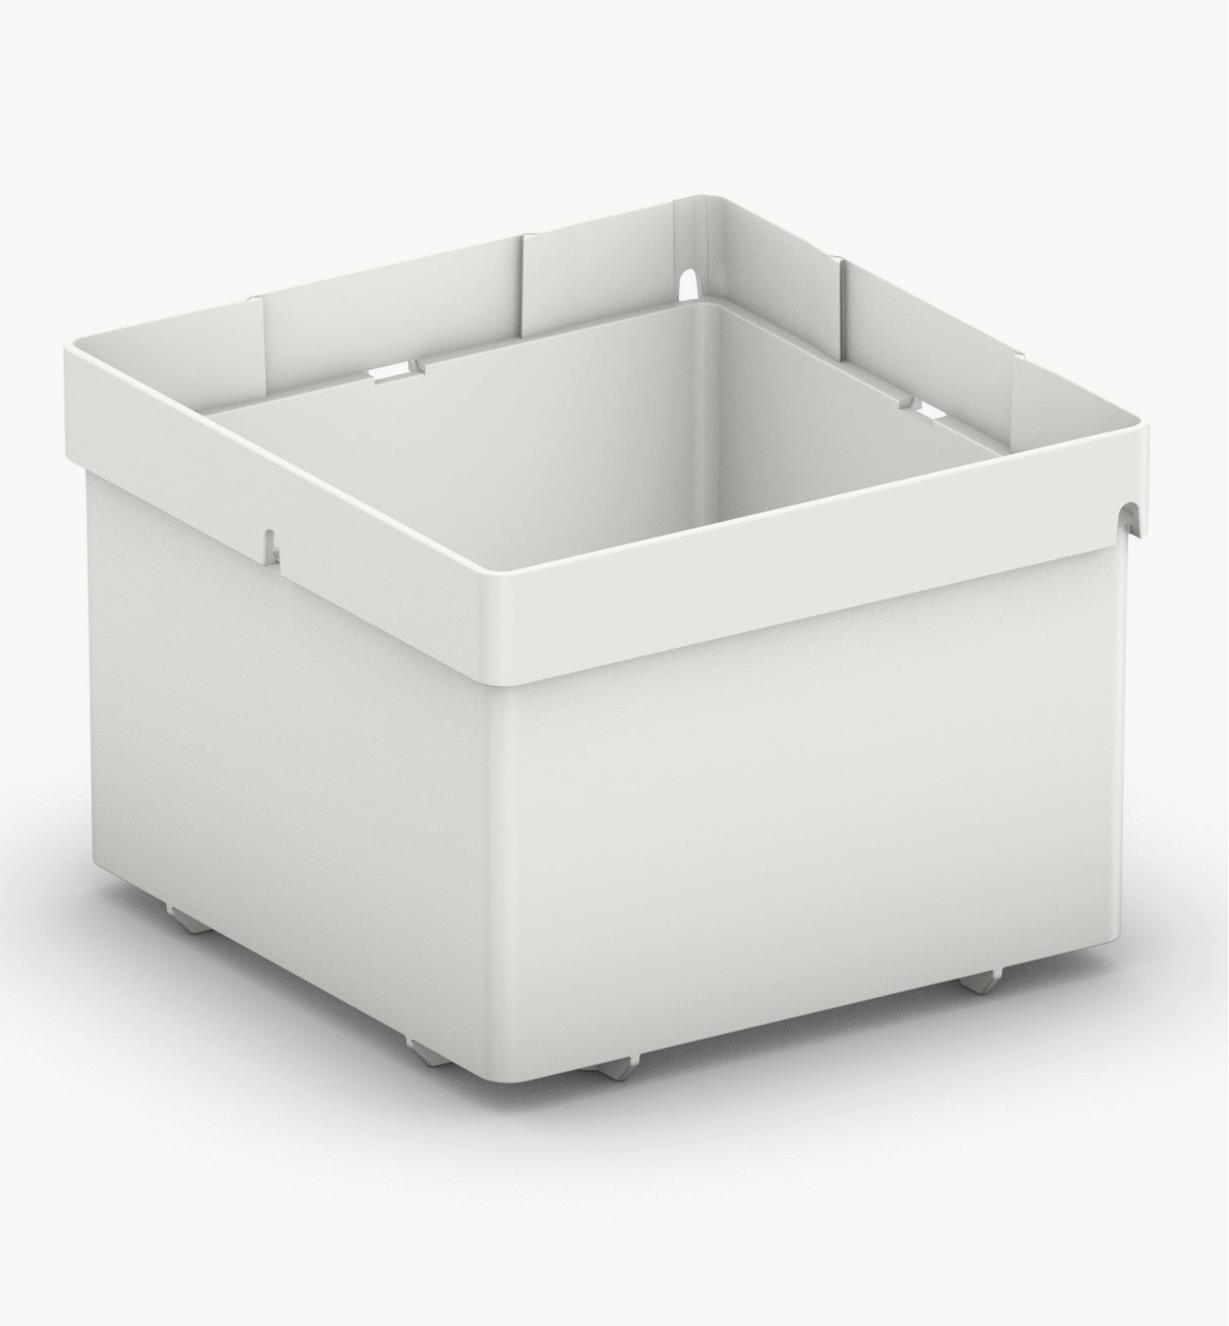 100mm × 100mm × 68mm Bins, pkg. of 6